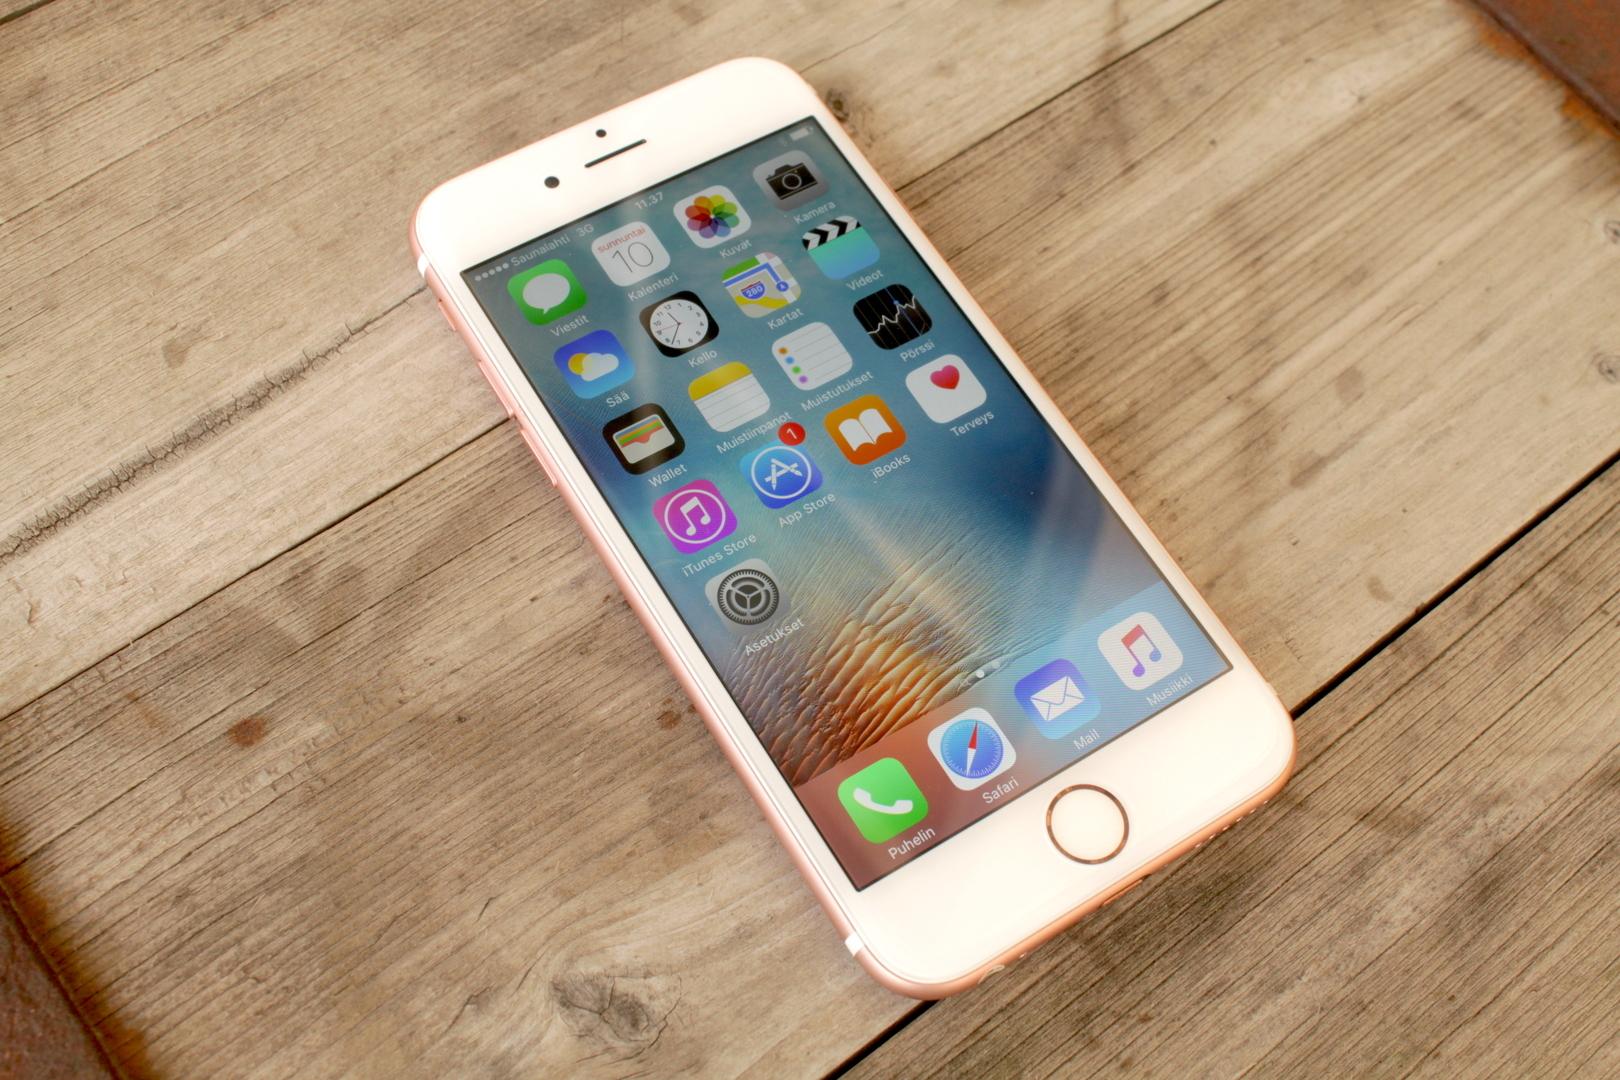 Iphone 6s Might Sport Animated Wallpapers Like Apple Watch: Live Wallpaper IPhone 6s Not Working